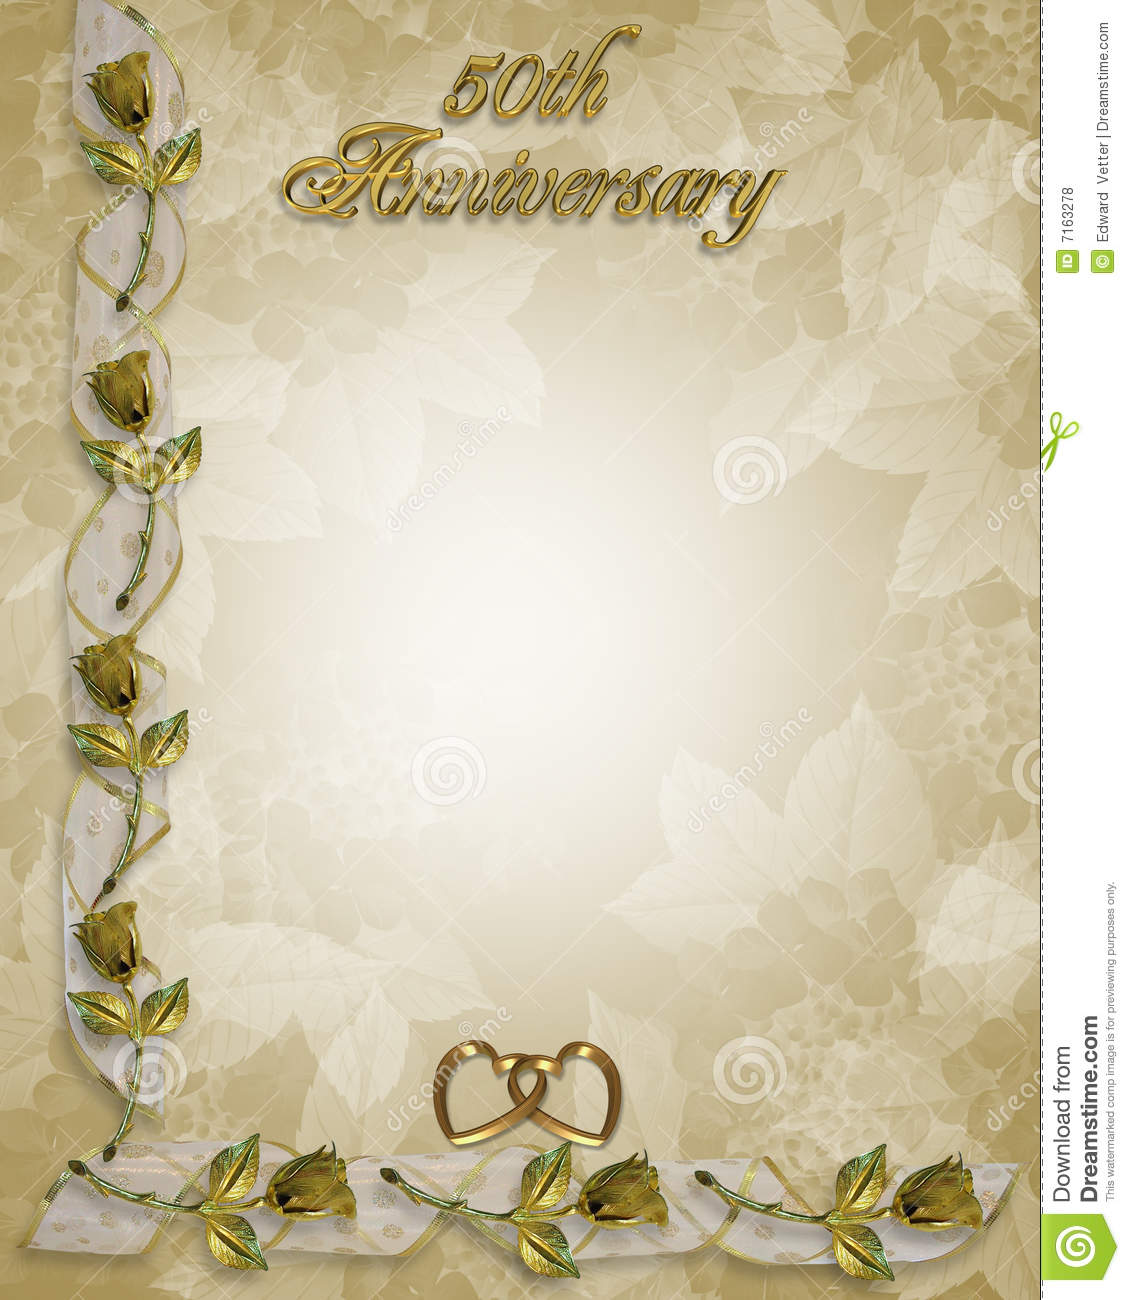 50th Wedding Anniversary Borders: 50th Anniversary Border Roses Royalty Free Stock Photos